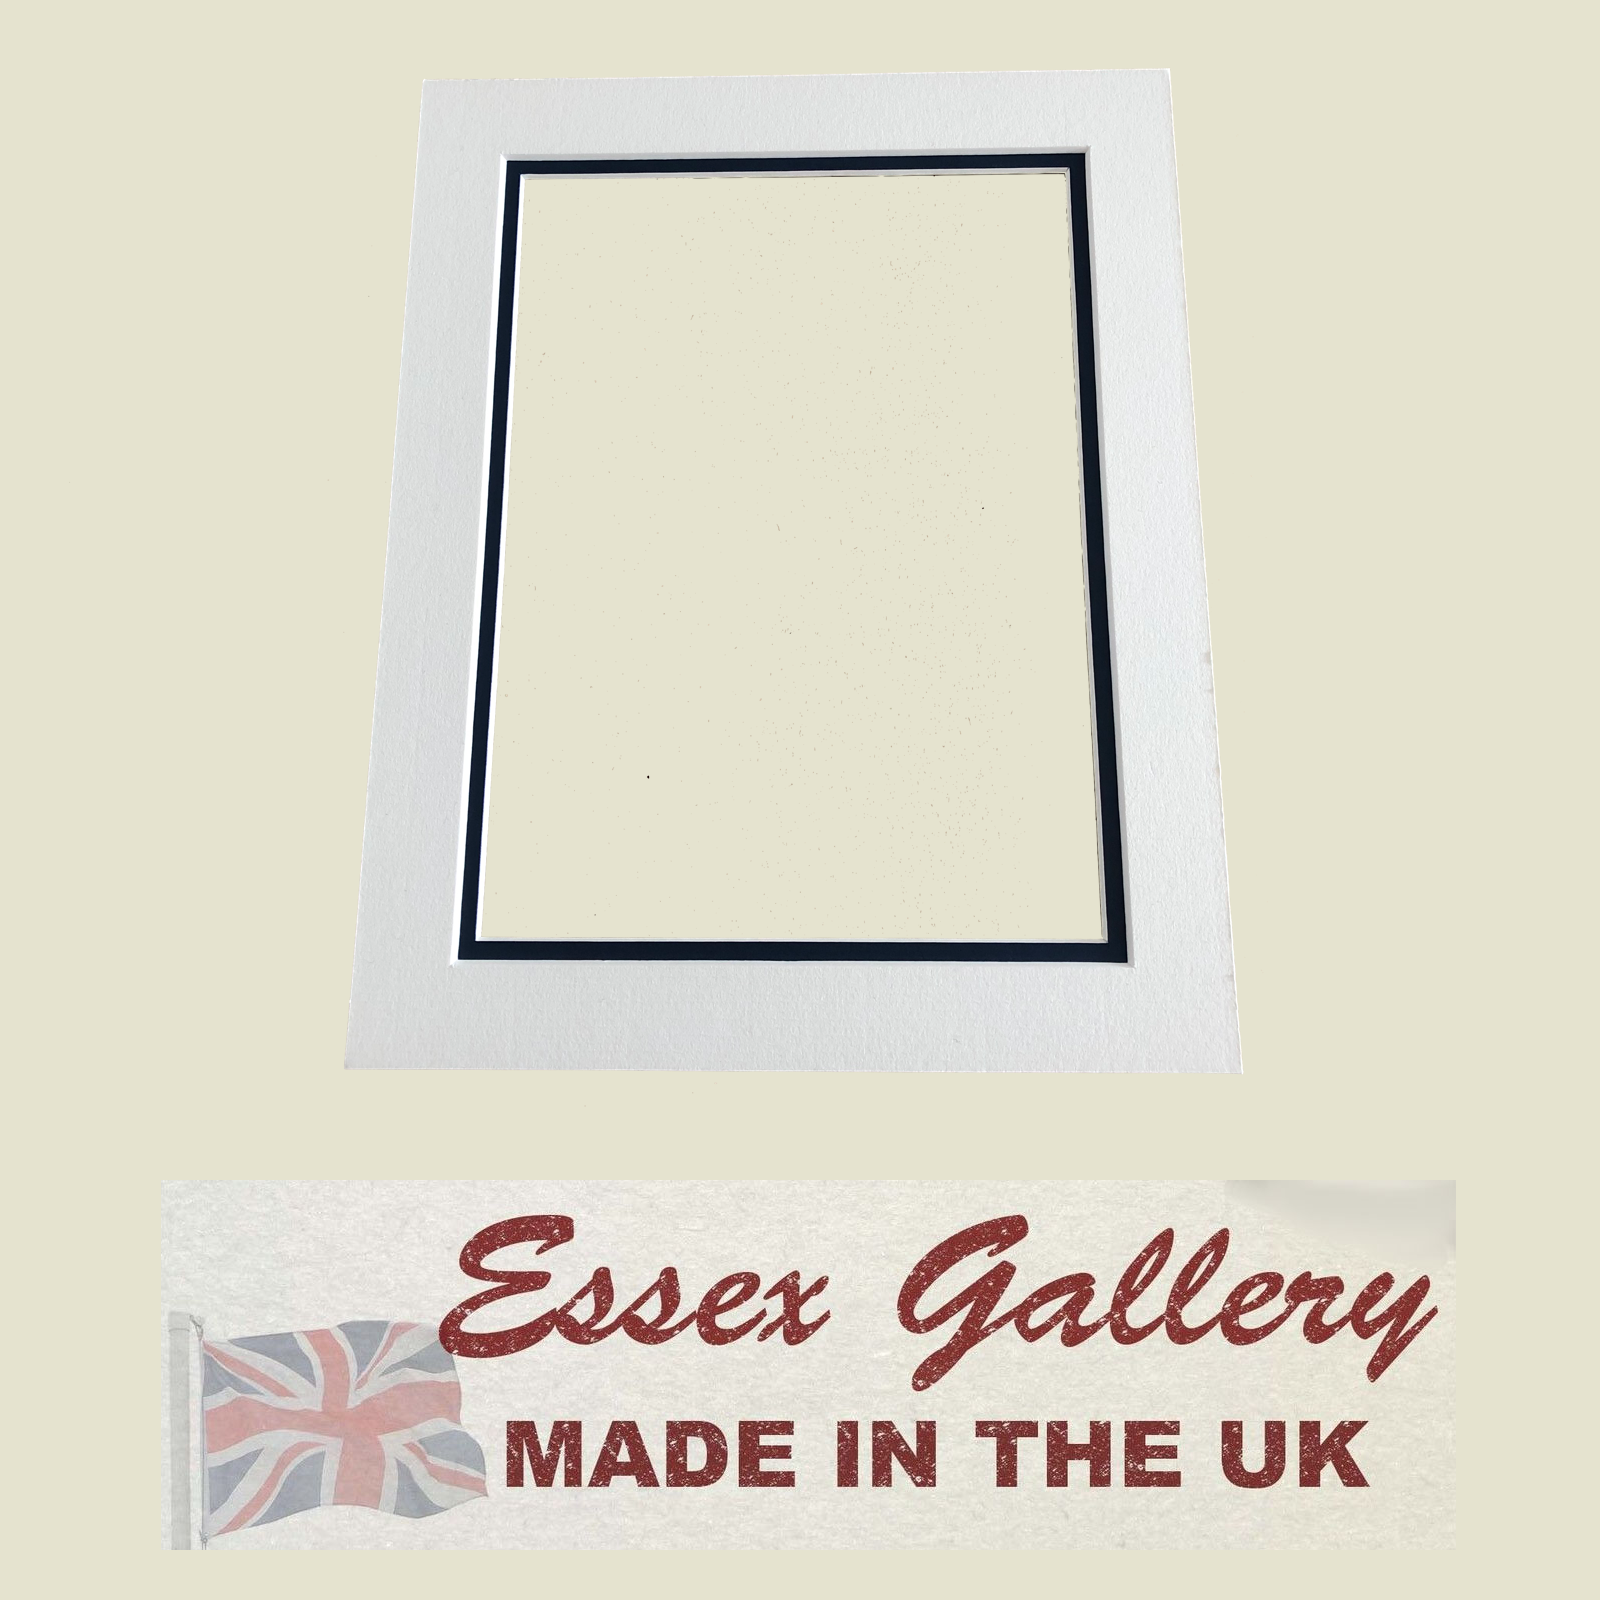 Bespoke Picture & Photo Frame Double Mounts - Cut to Any Size (Max Size 20x16) 7